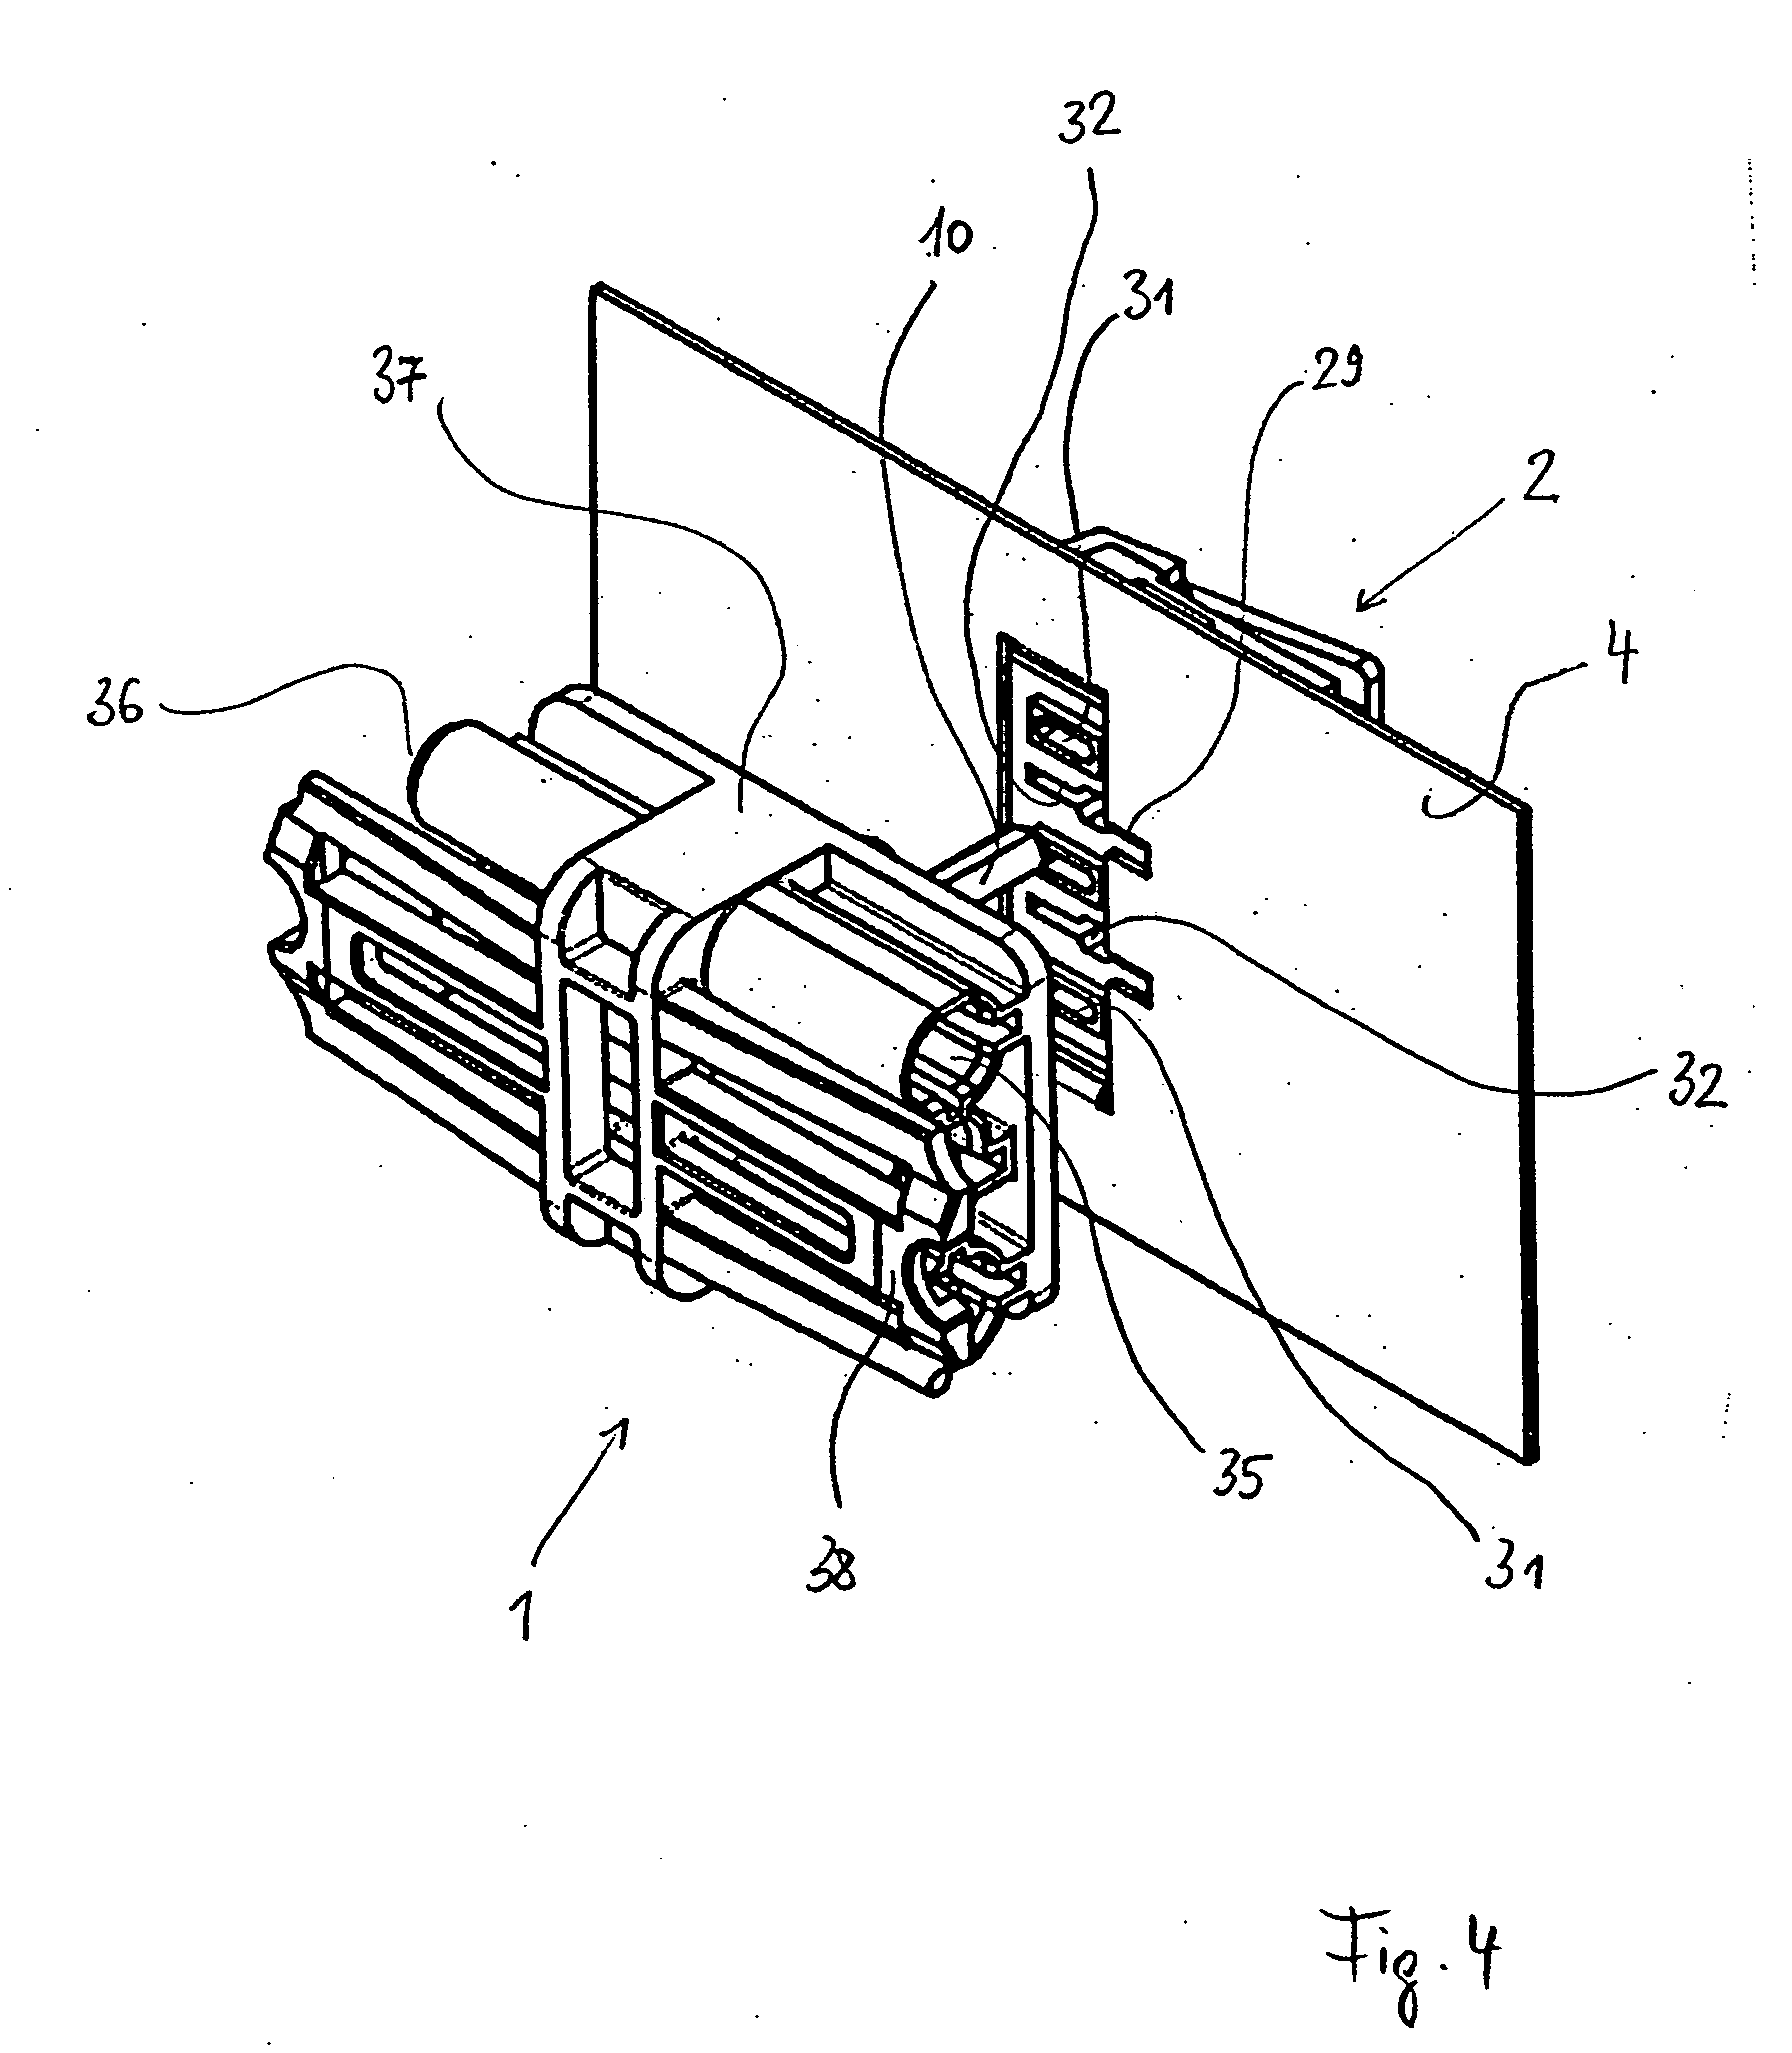 patent ep1388914a1 - anschlusssystem